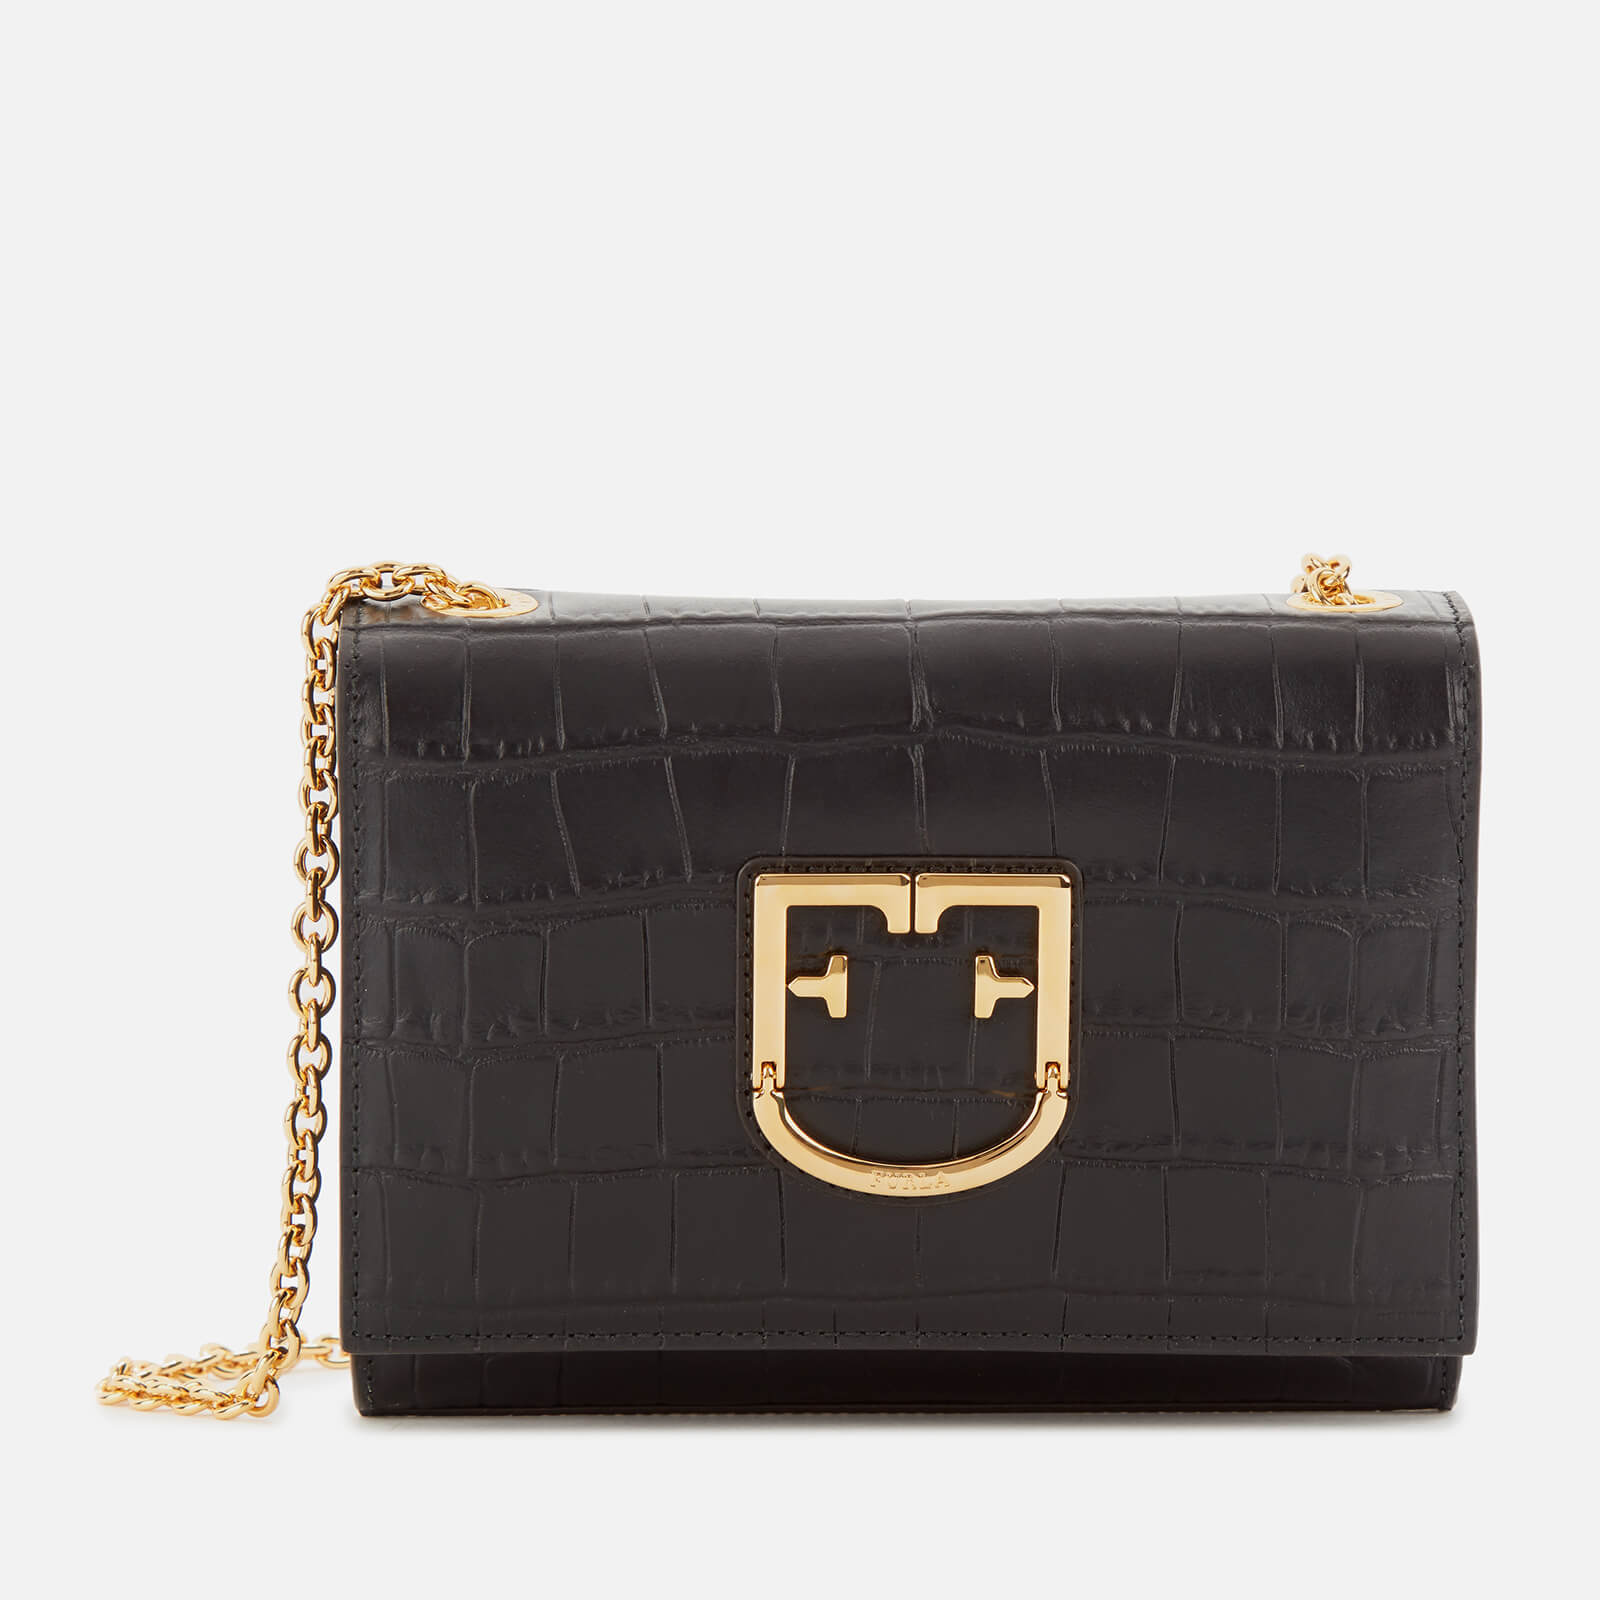 Furla Women's Viva Mini Pochette Bag - Black